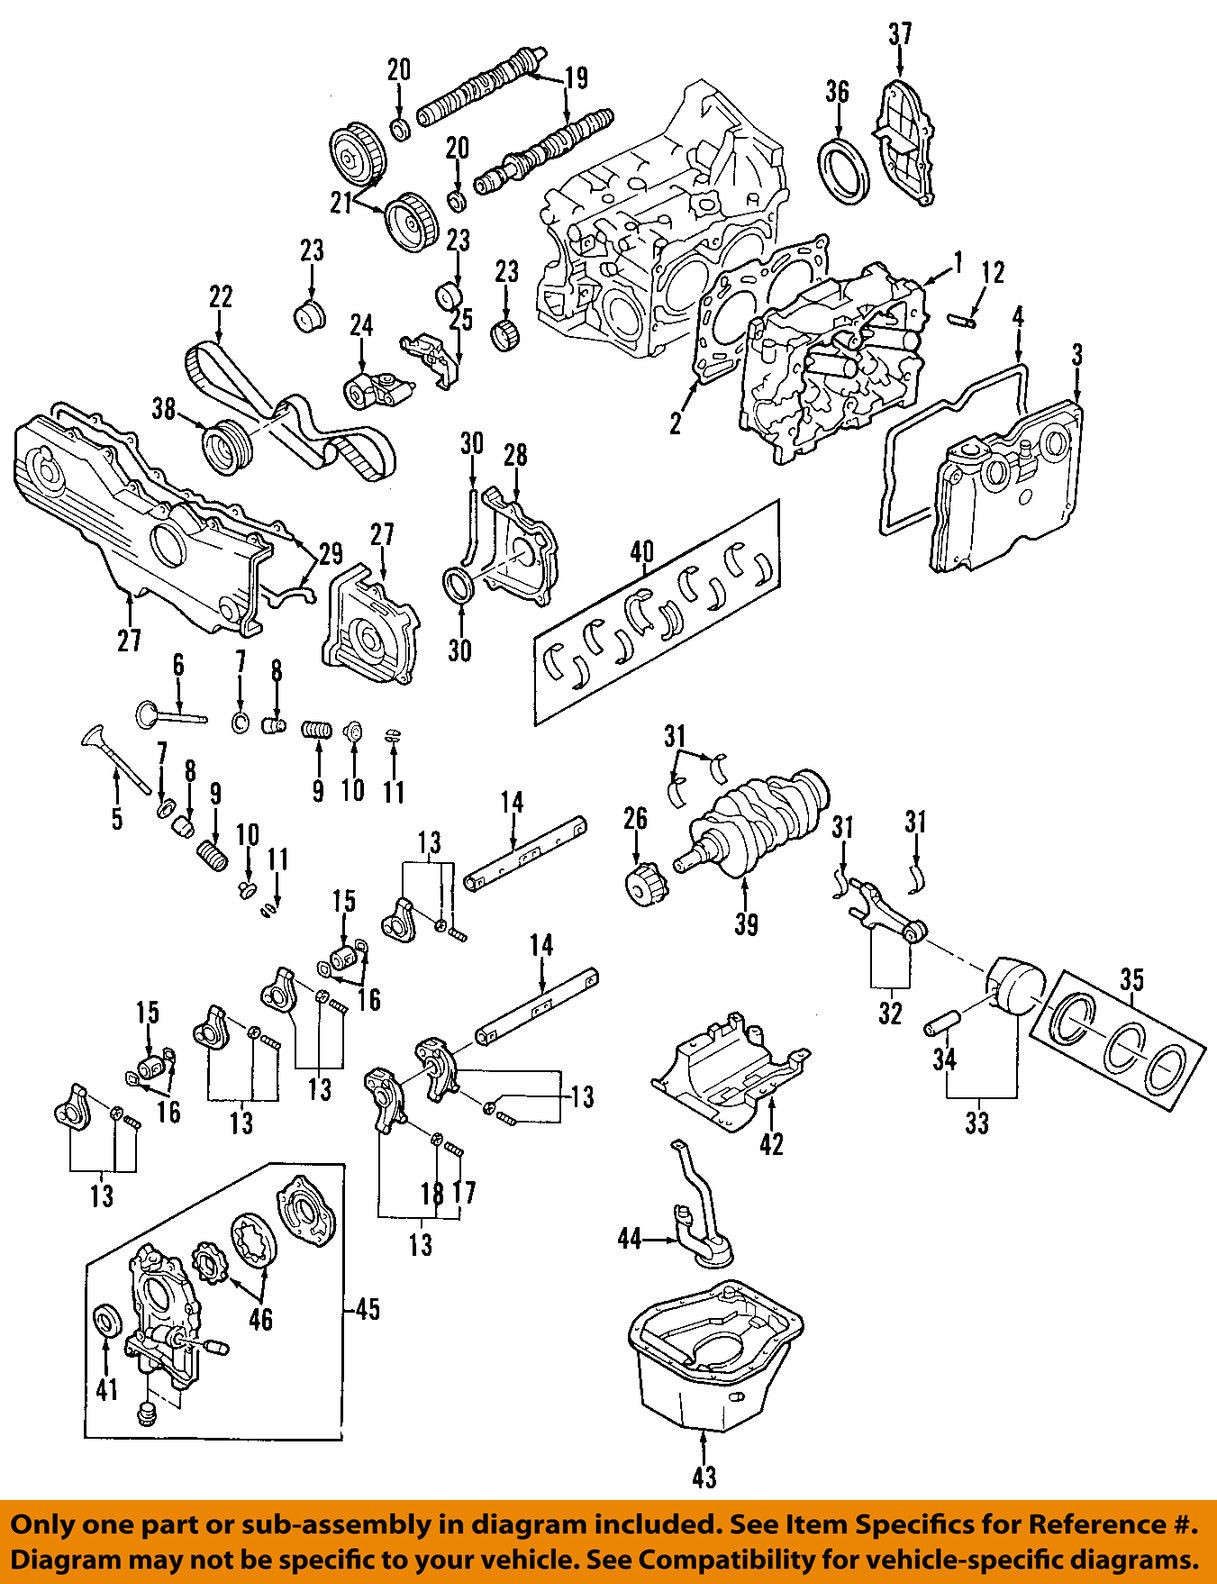 hight resolution of subaru wrx engine diagram wiring diagram inside 08 sti engine diagram engine parts 2003 subaru outback